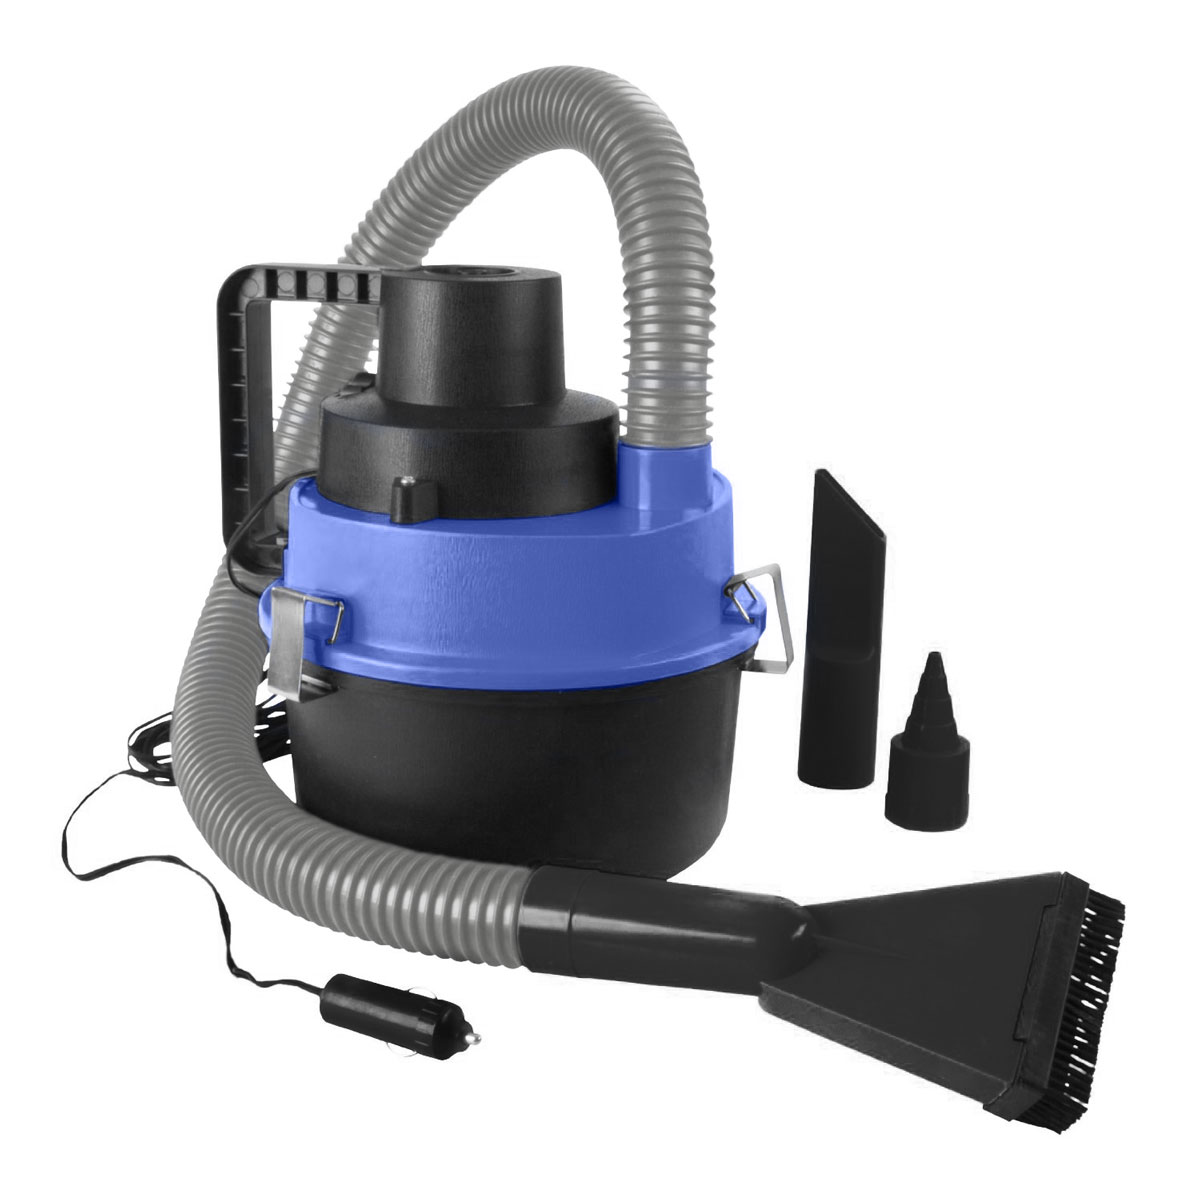 2 IN 1 WET & DRY VACUUM CLEANER AND AIRPUMP